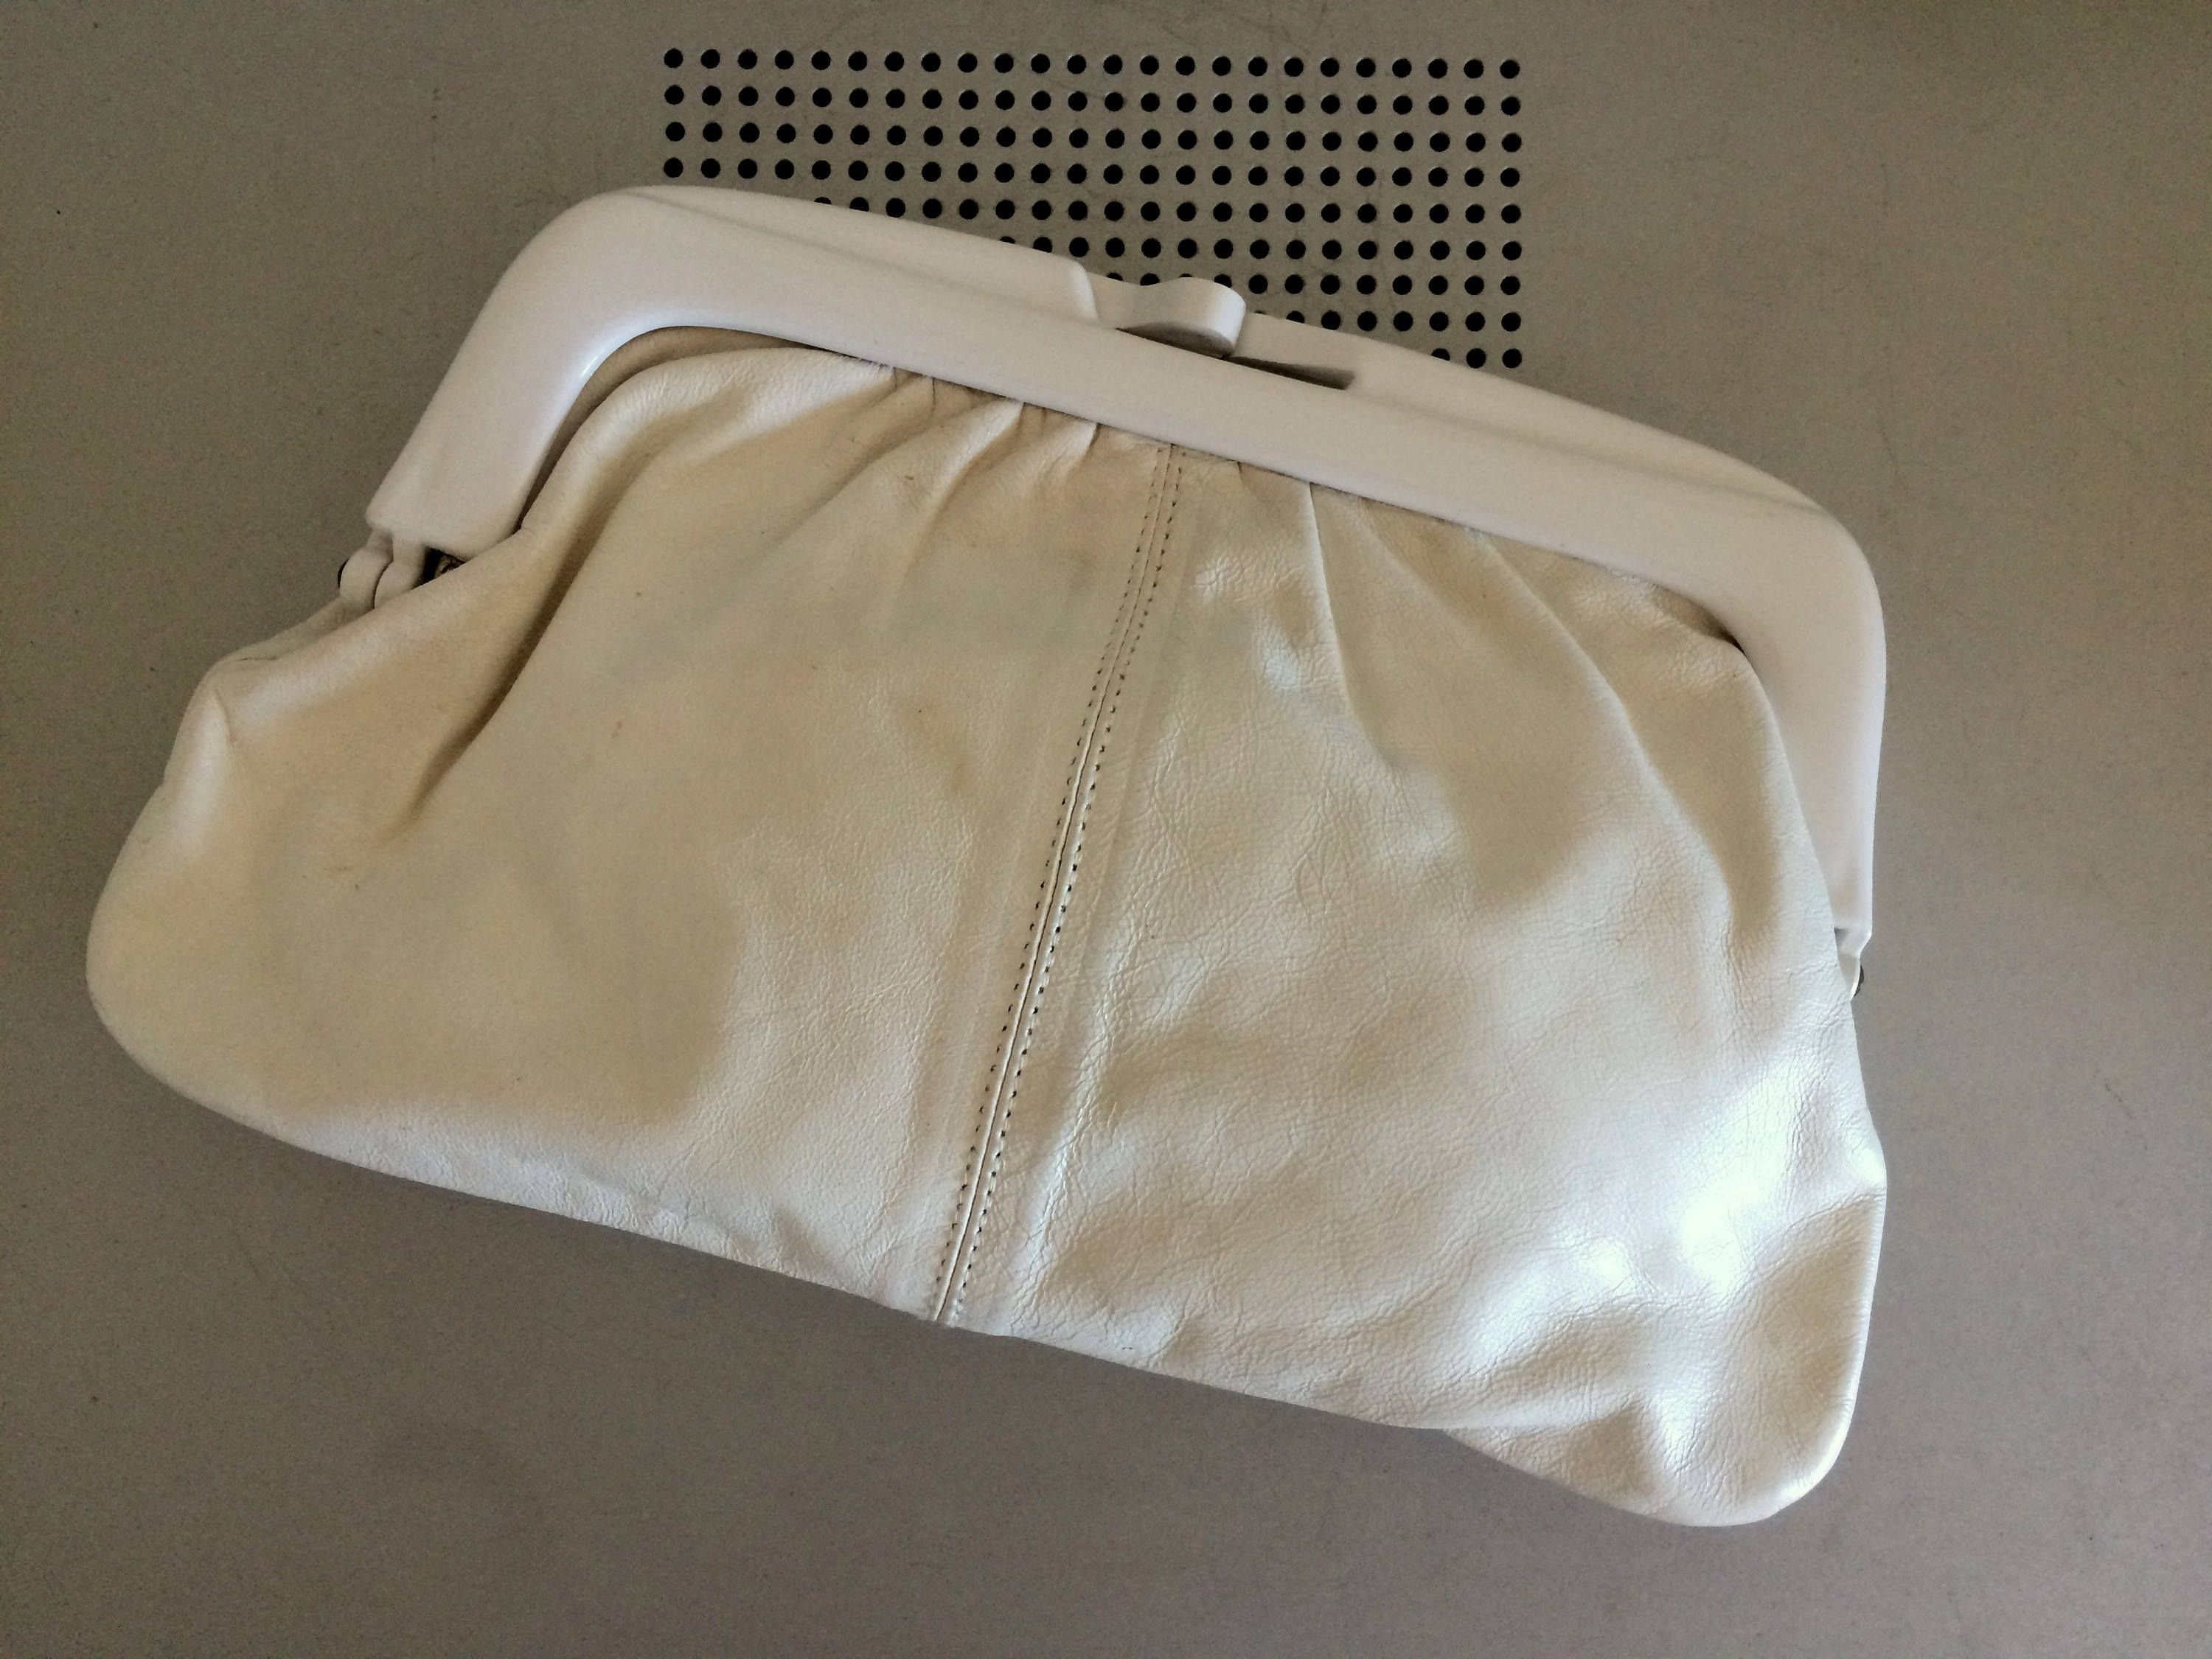 d0ff930efa67 White Retro Clutch bag – 1960s Go-Go Bag – Eaton Brand – Made in Italy –  Marked Genuine leather by OnceTwiceVintageWare on Etsy